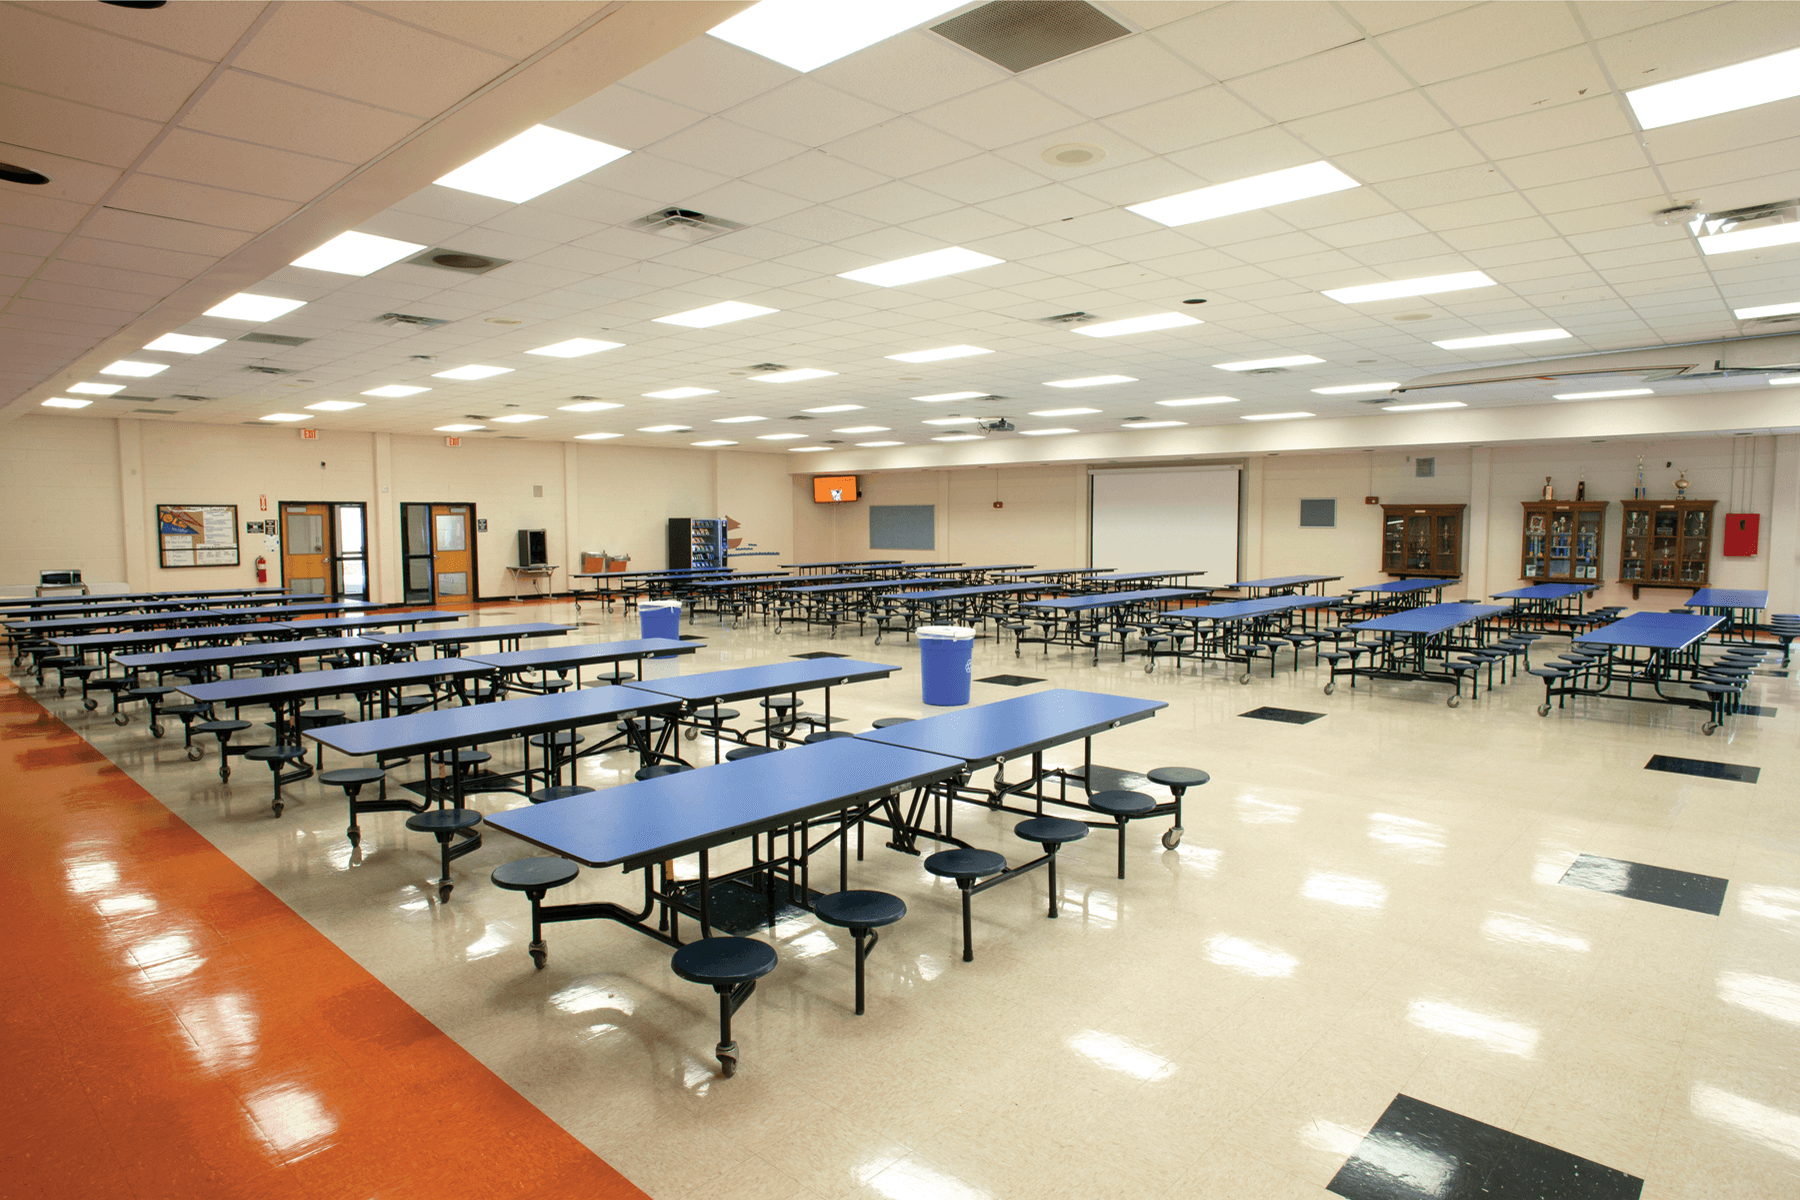 Standard blue colored rectangle shaped foldable lunch tables.